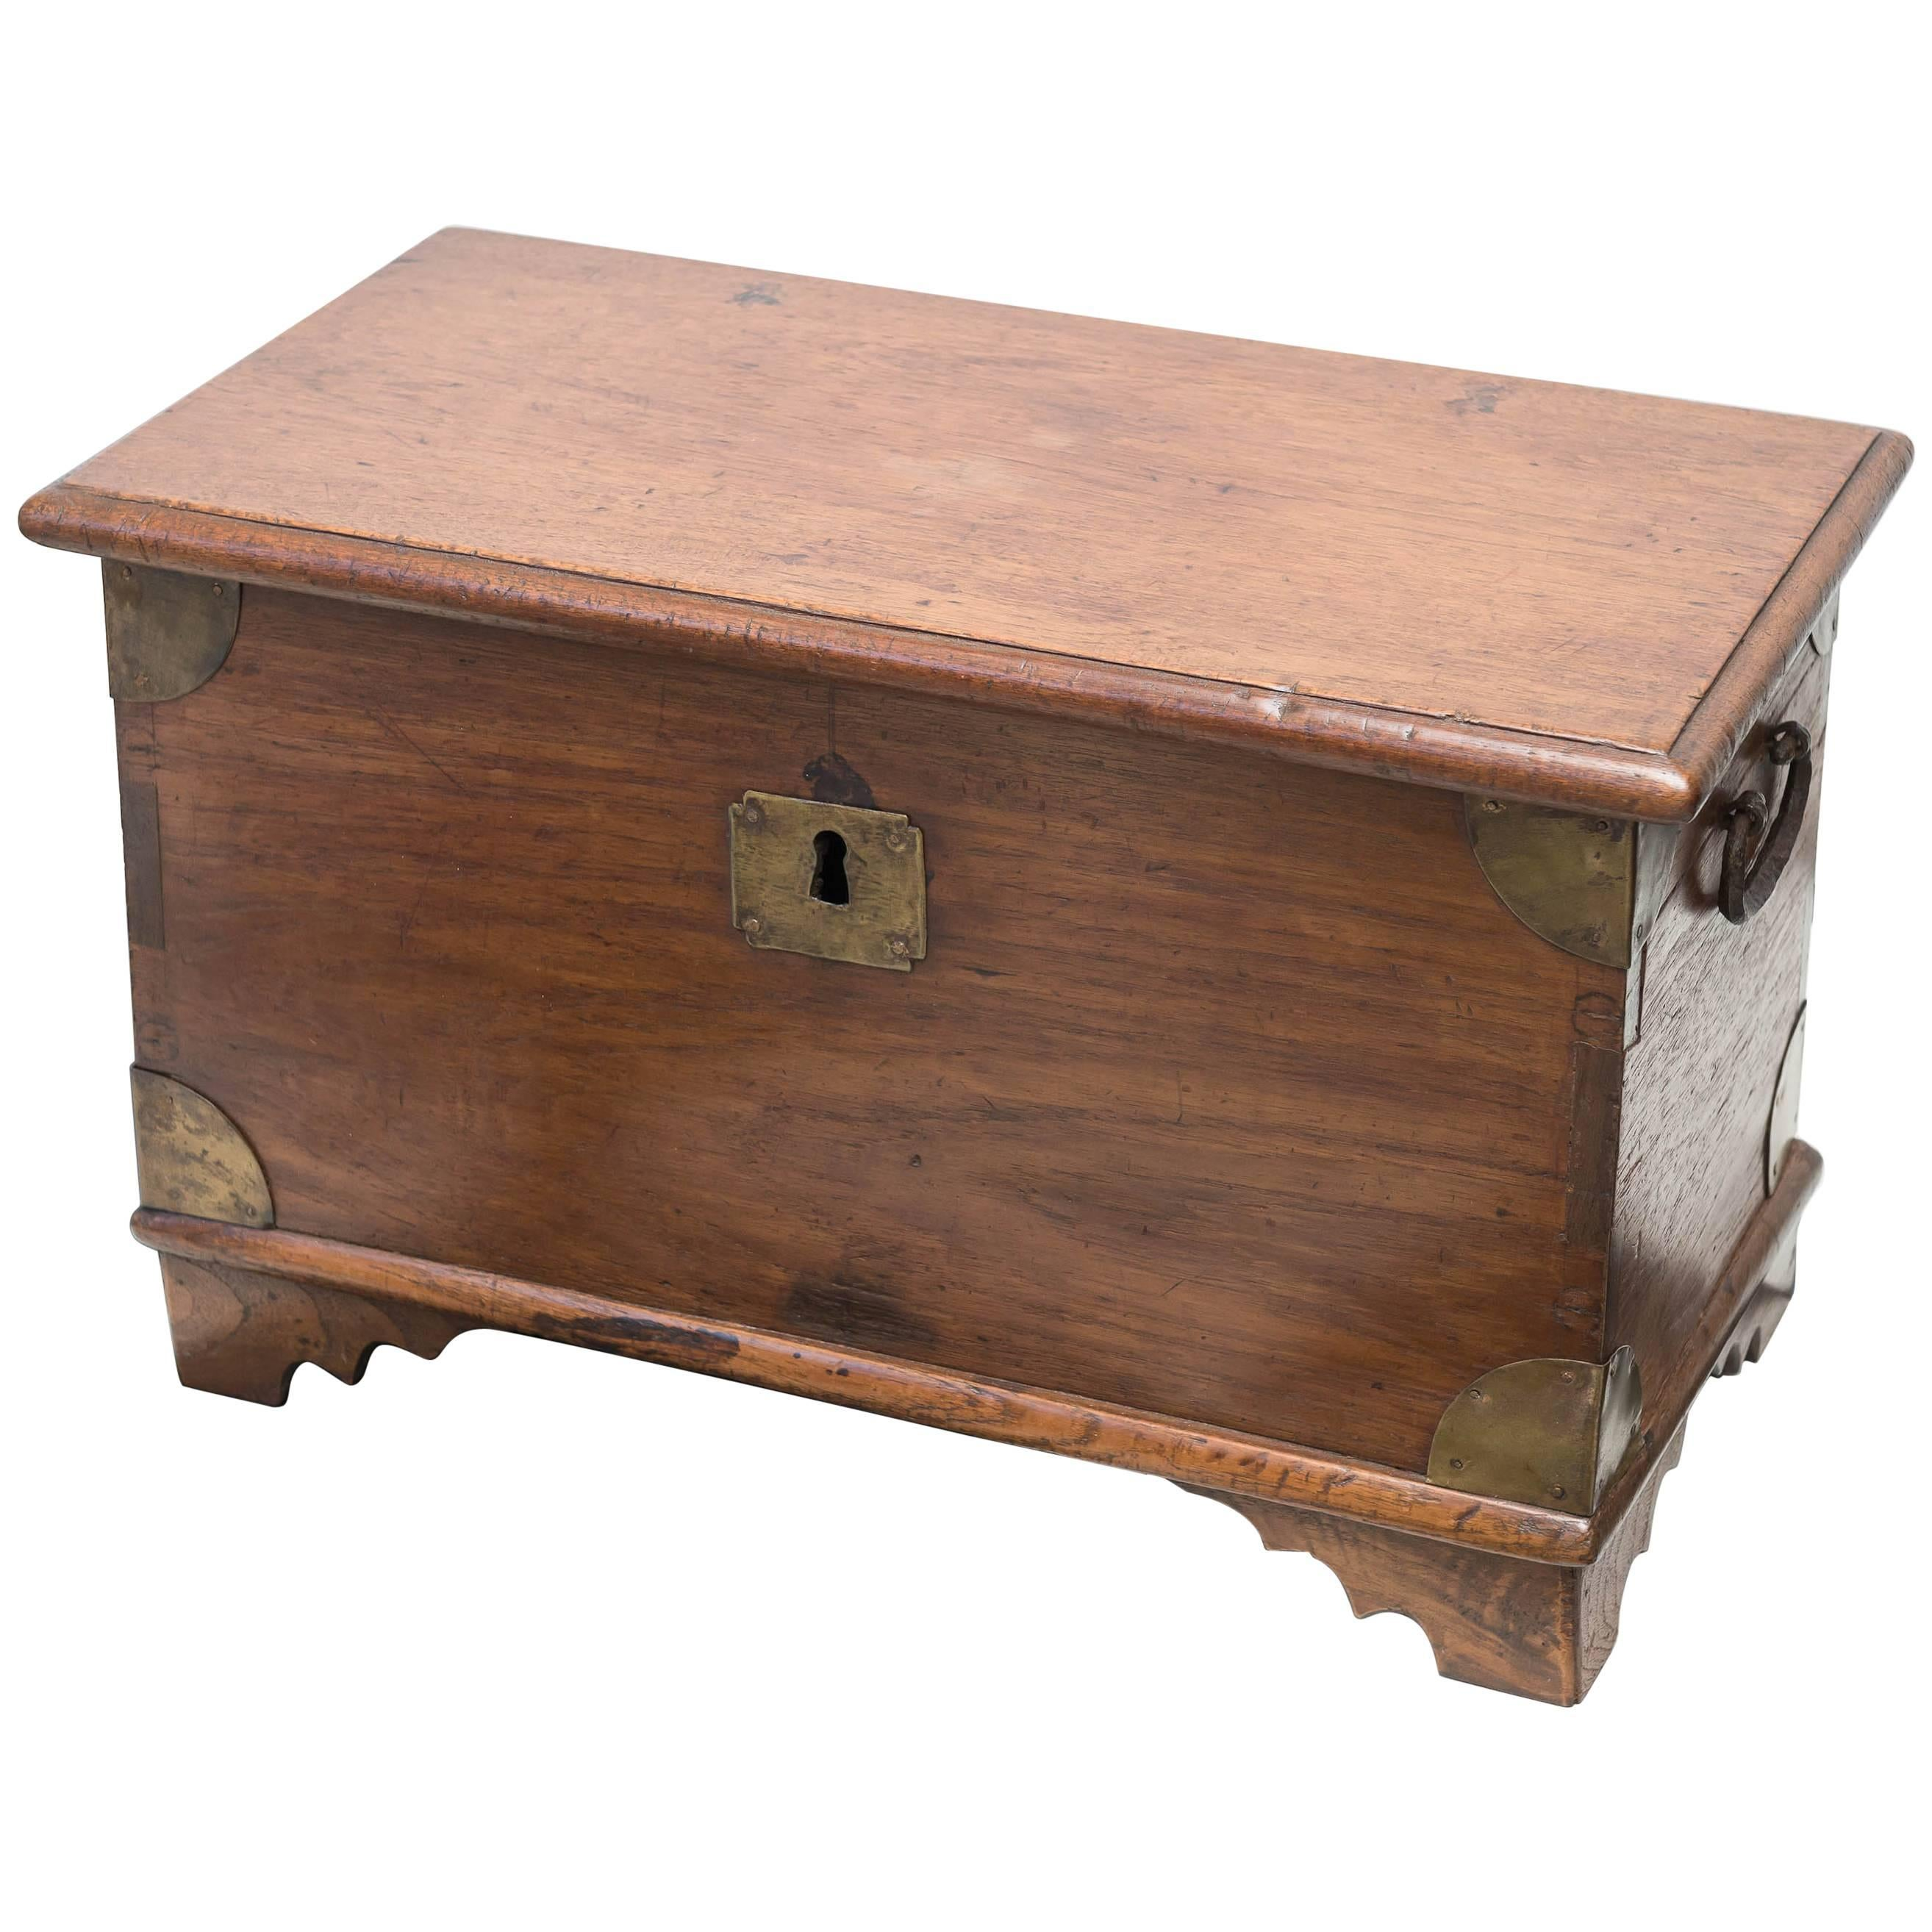 Antique French Traveling Curved Top And Brass Riveted Wood Trunk